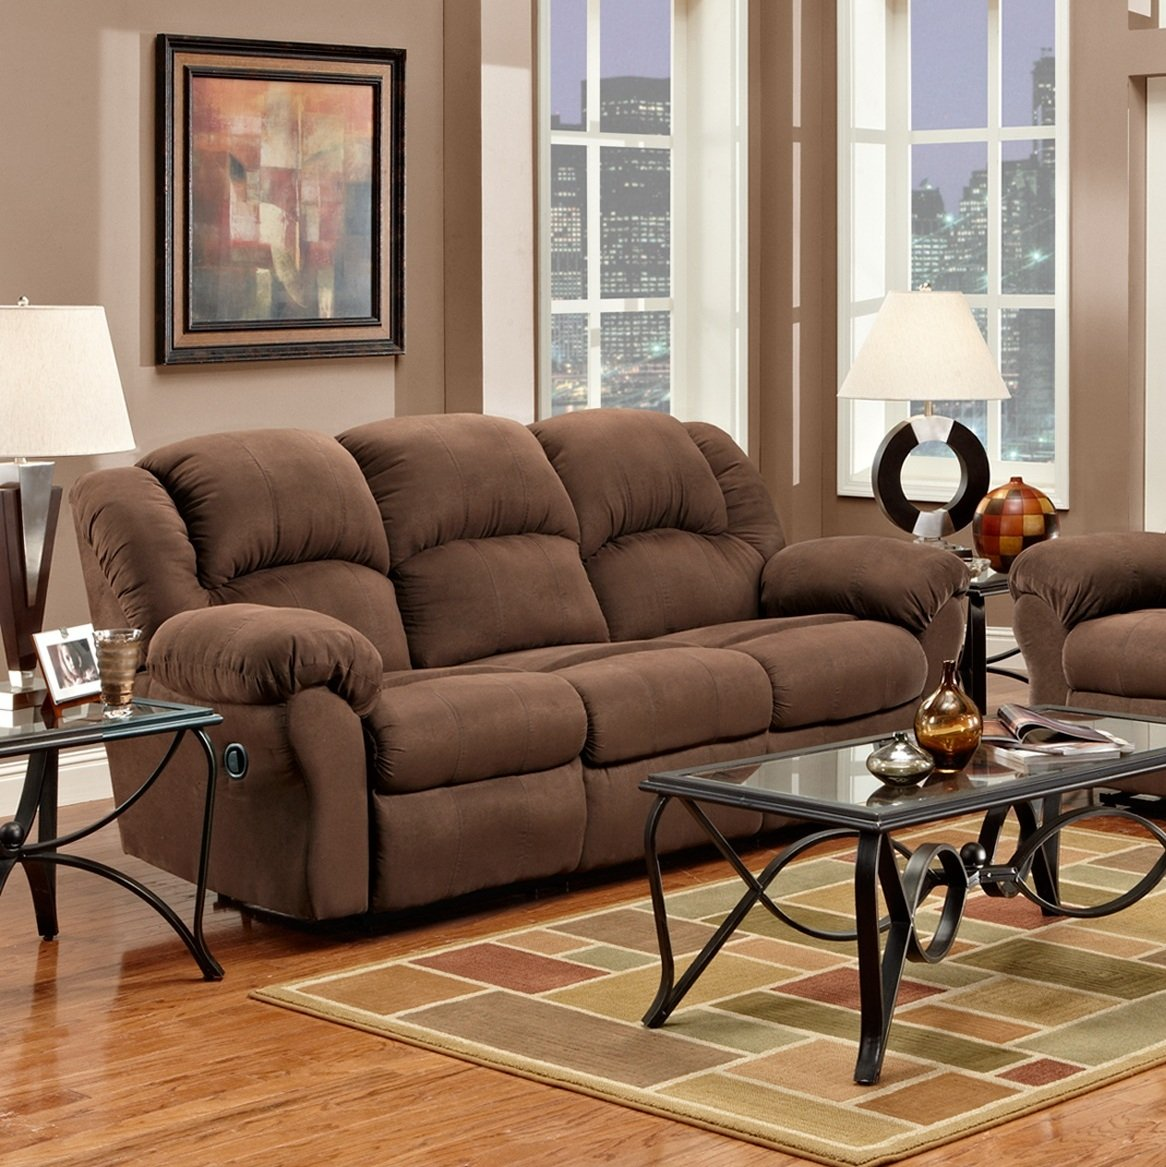 Amazon.com Roundhill Furniture Aruba Microfiber Dual Reclining Sofa Chocolate Kitchen u0026 Dining & Amazon.com: Roundhill Furniture Aruba Microfiber Dual Reclining ... islam-shia.org